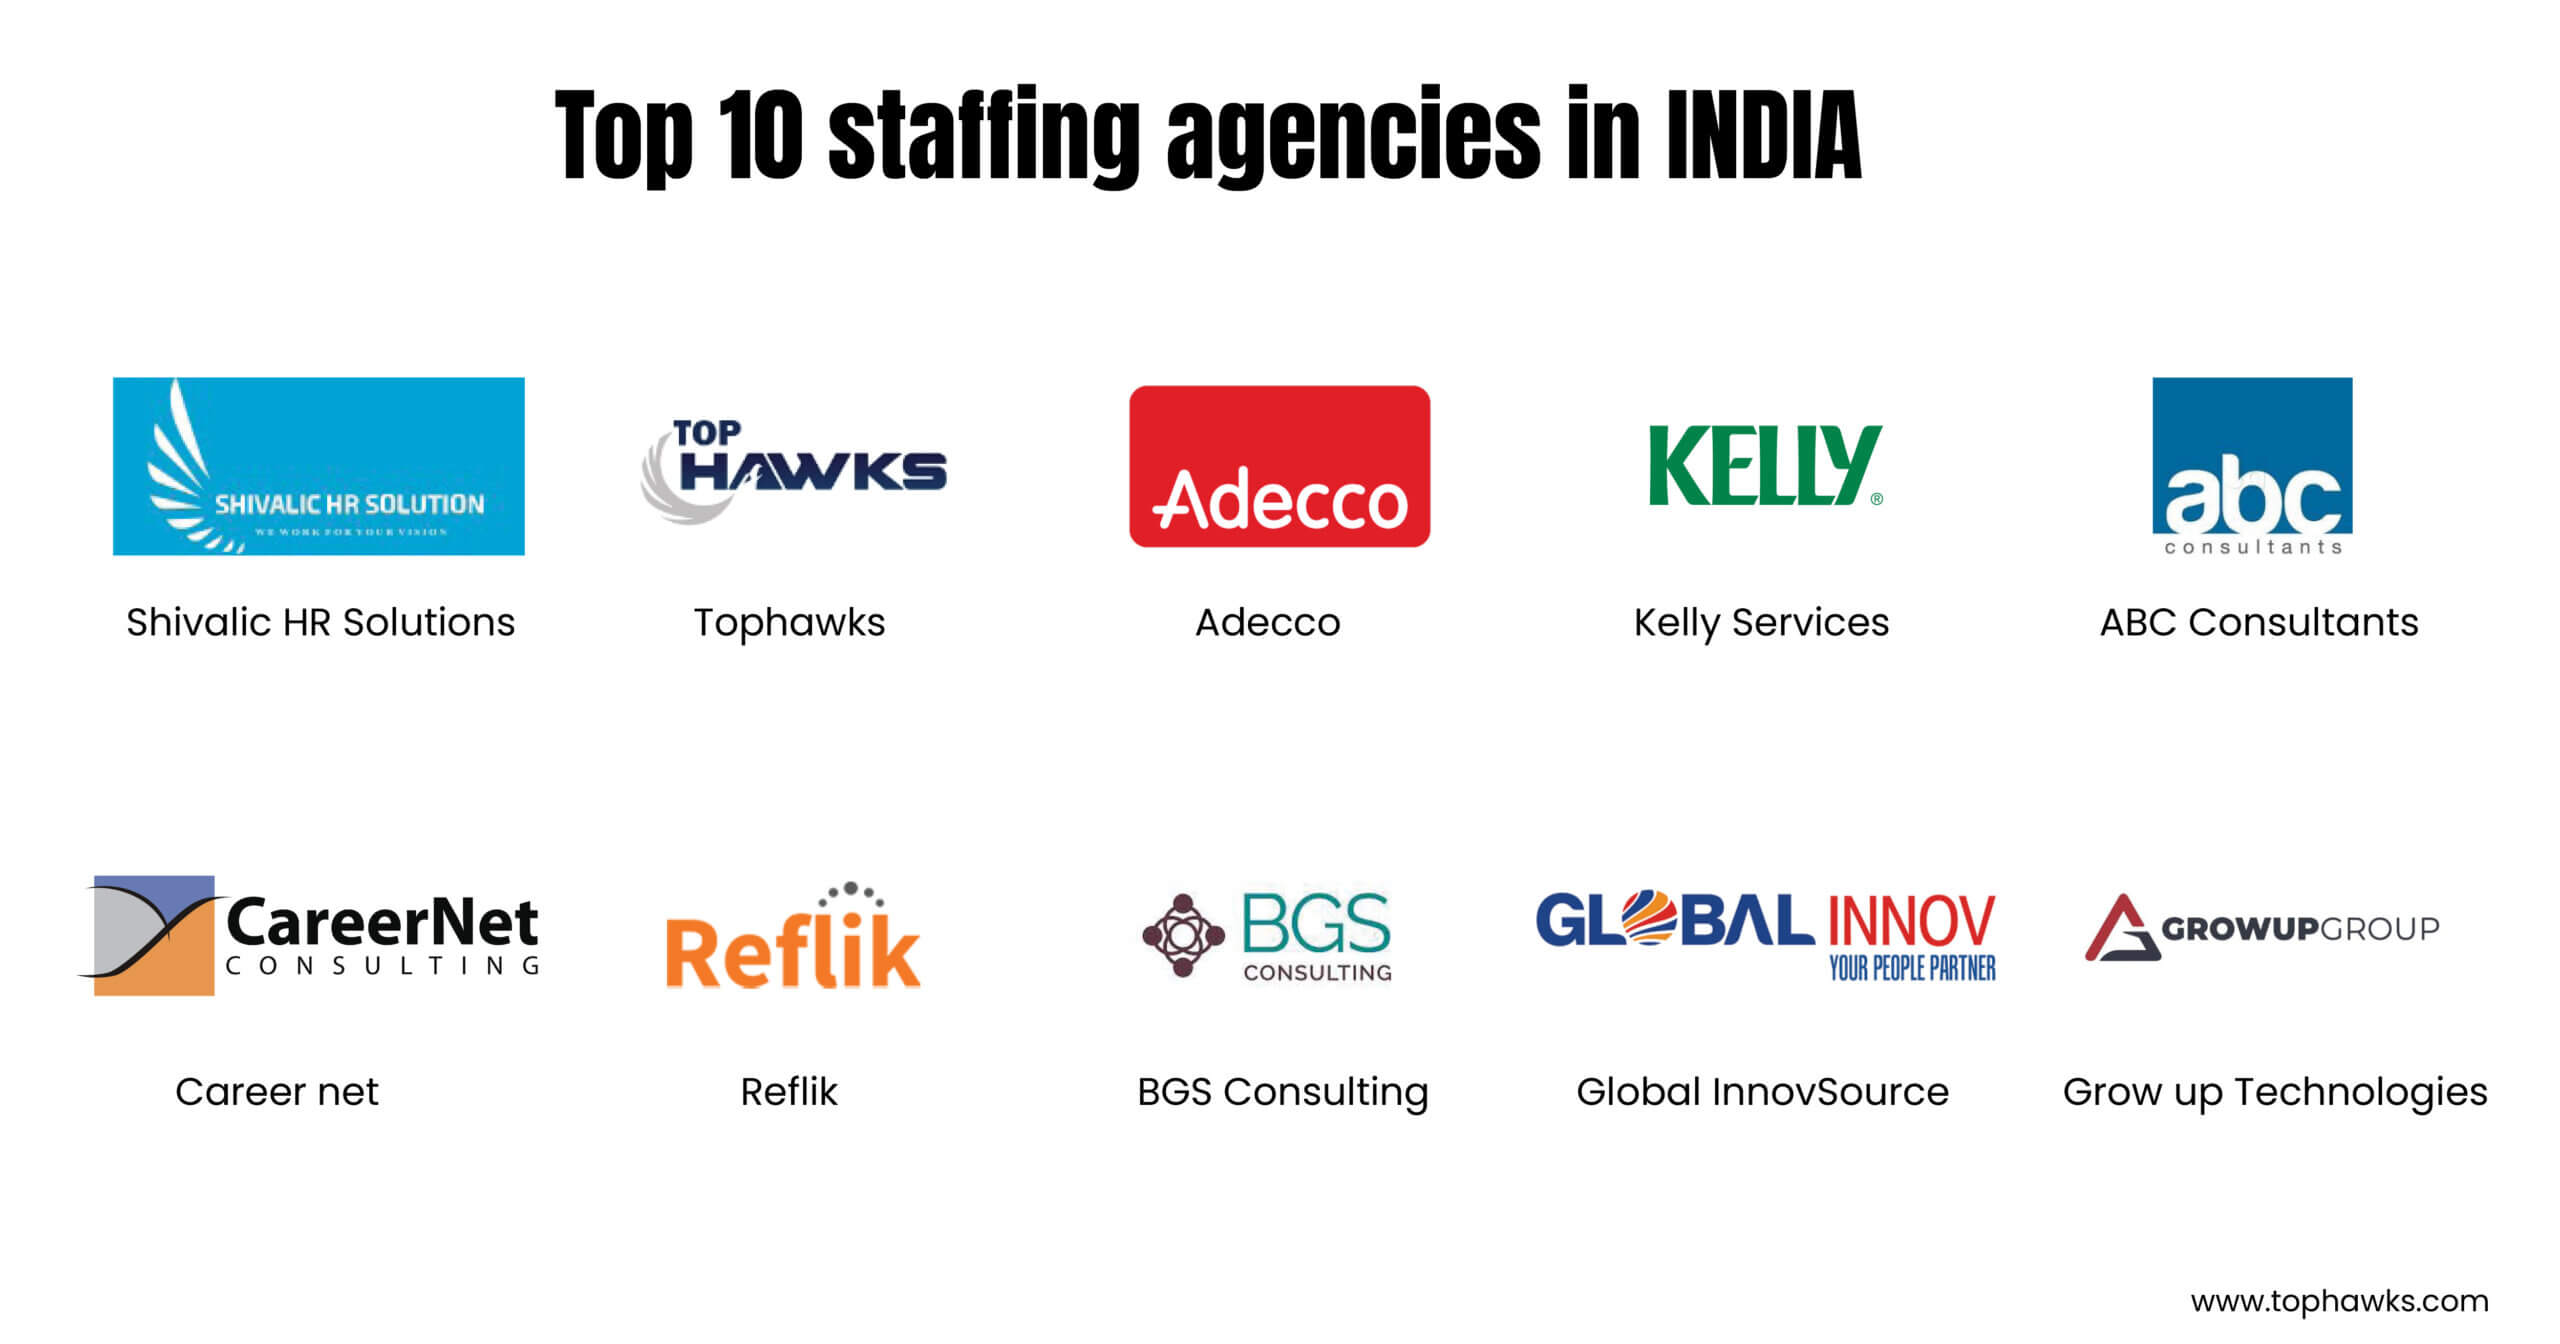 Top 10 staffing agencies in India